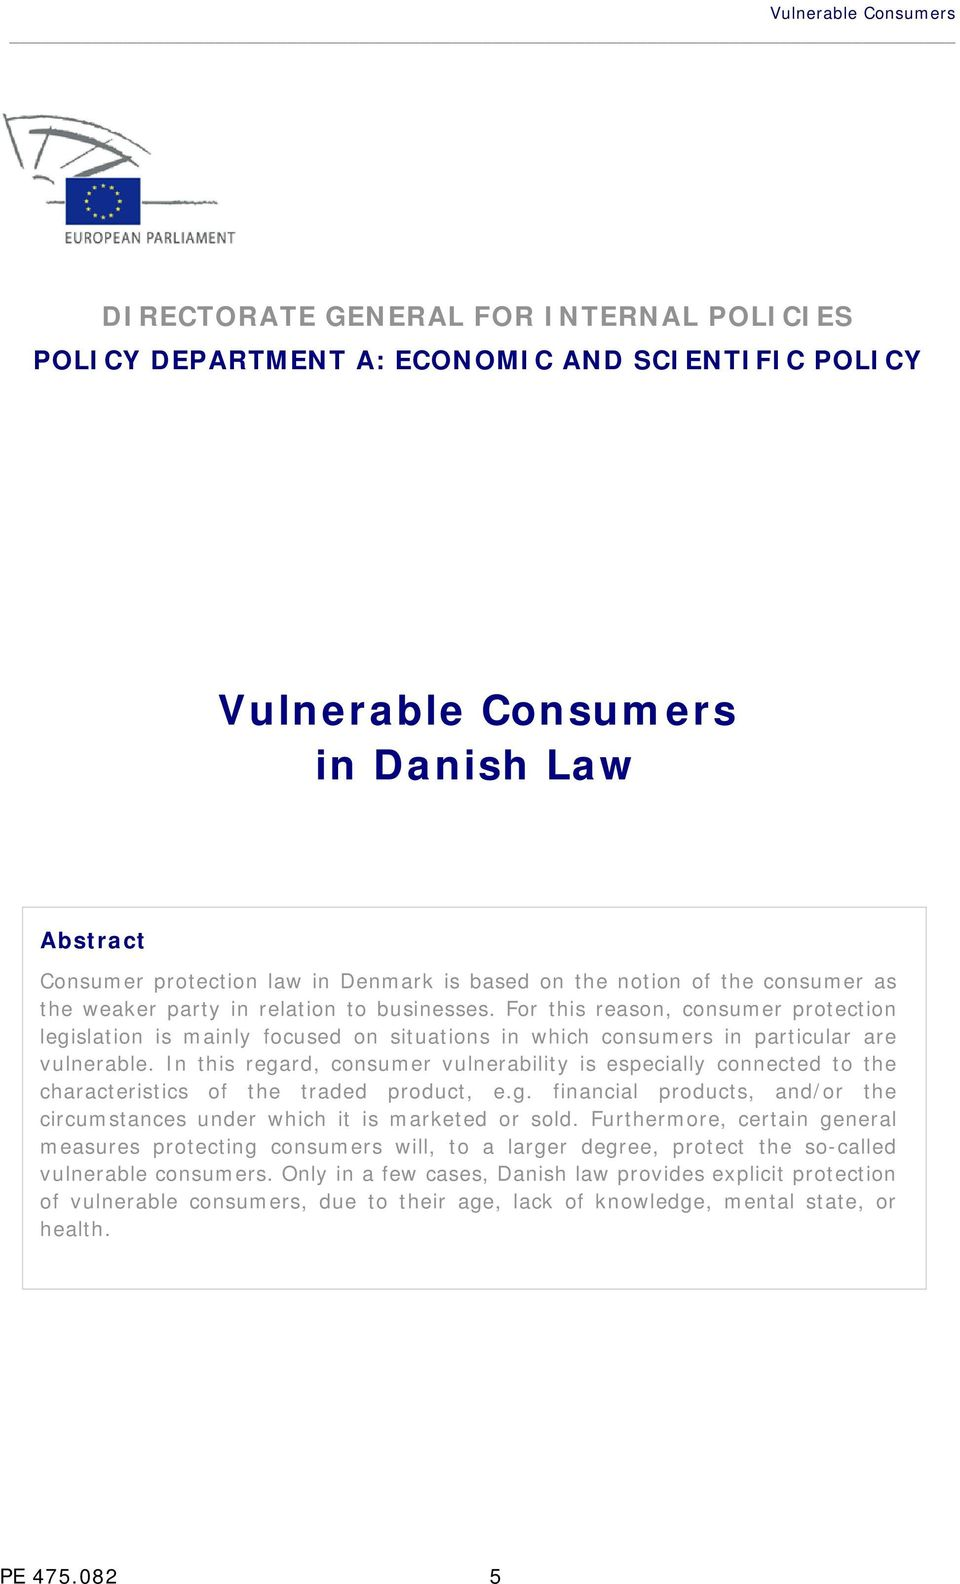 For this reason, consumer protection legislation is mainly focused on situations in which consumers in particular are vulnerable.